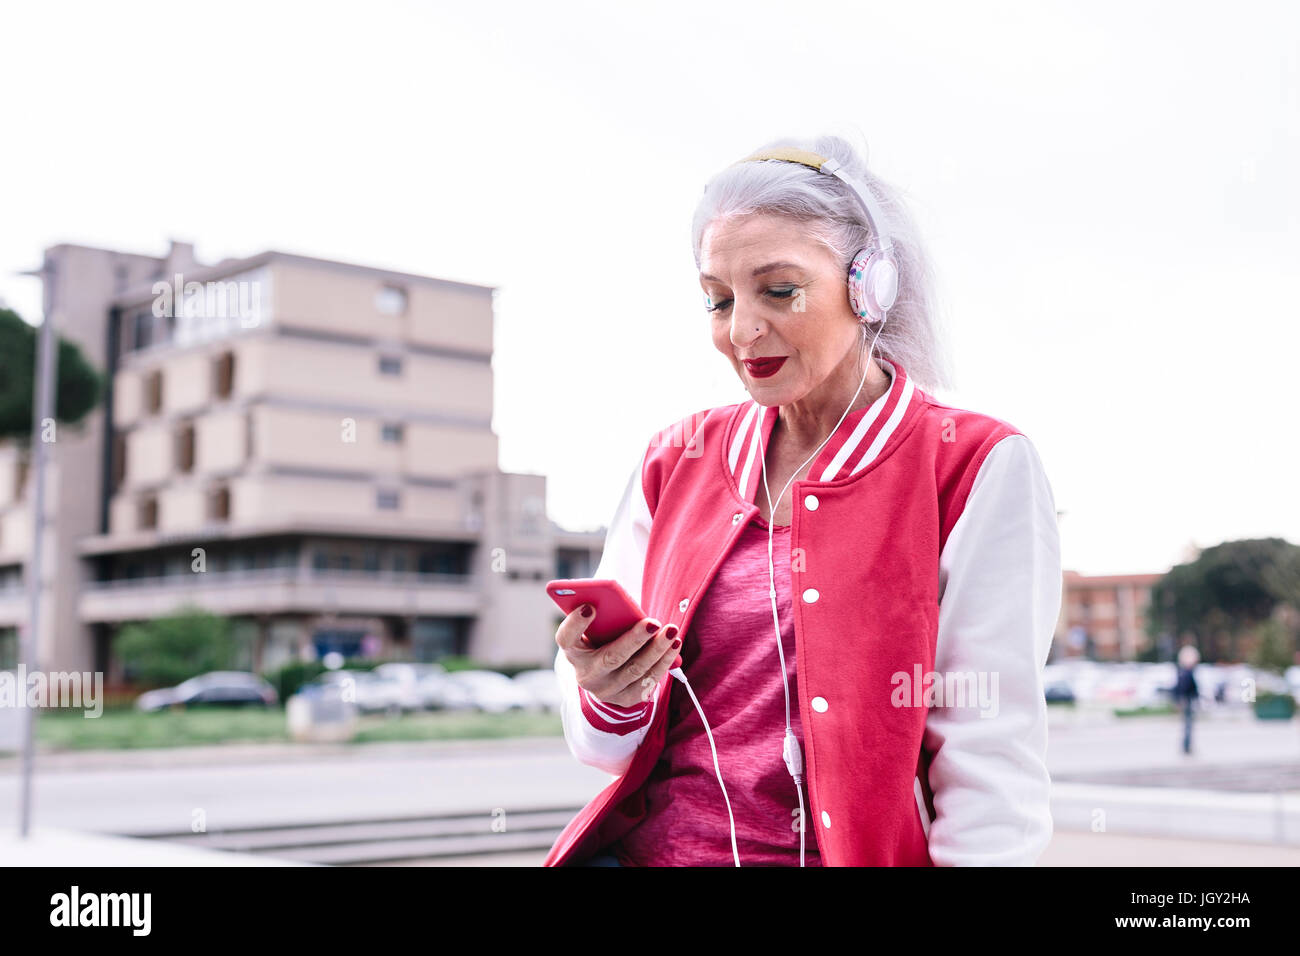 Mature woman in baseball jacket listening to headphones and looking at smartphone - Stock Image